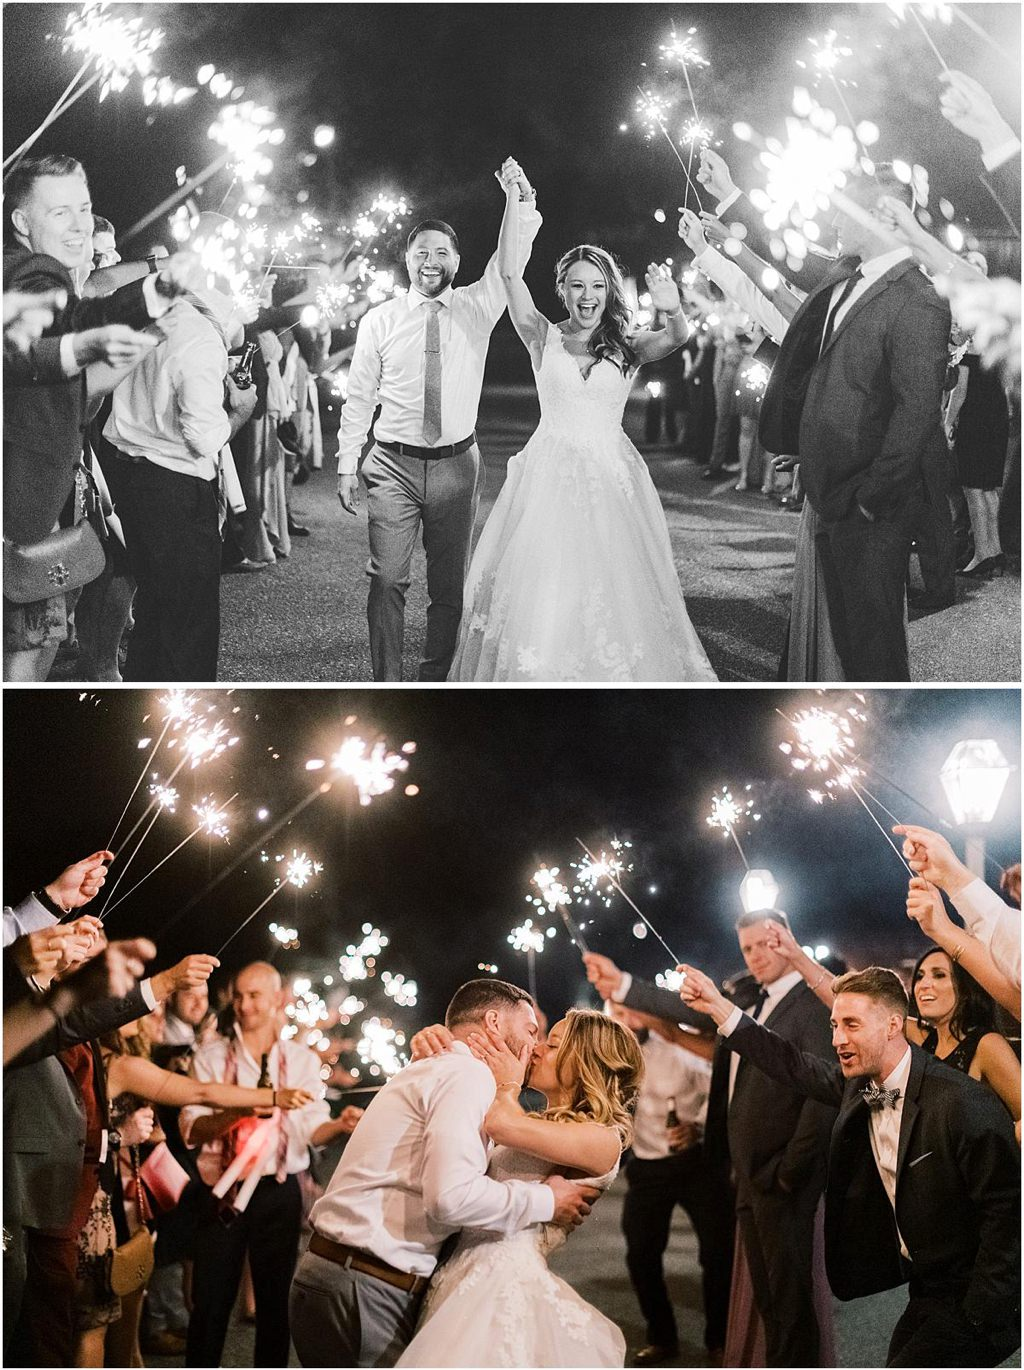 A bride and groom walking through a line of sparklers